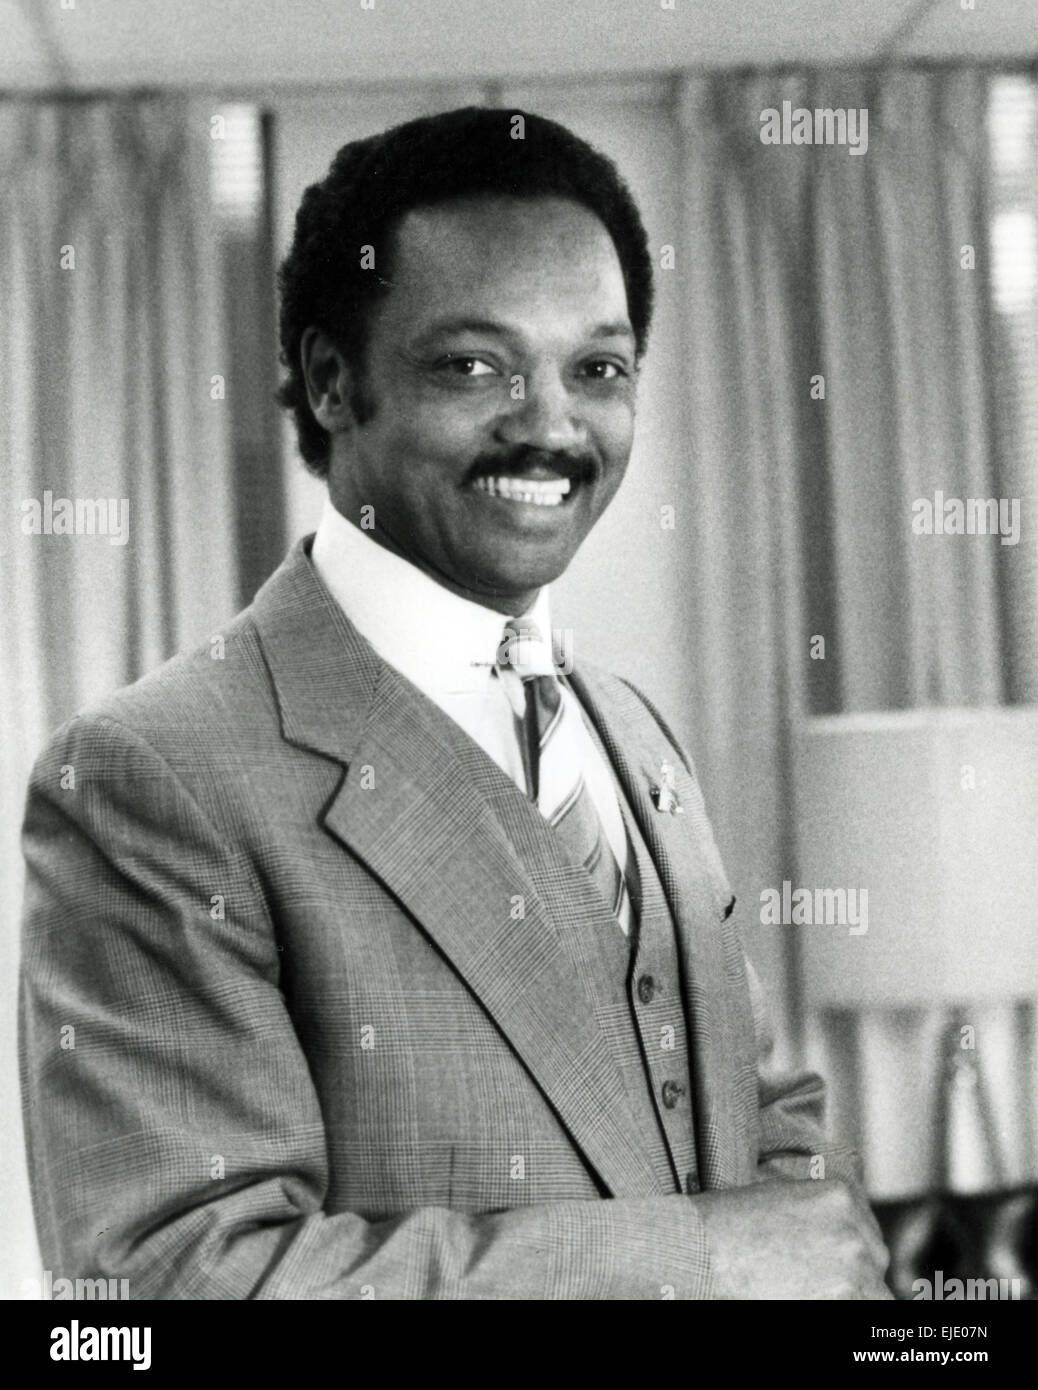 JESSE JACKSON US civil rights activist in 1984 - Stock Image